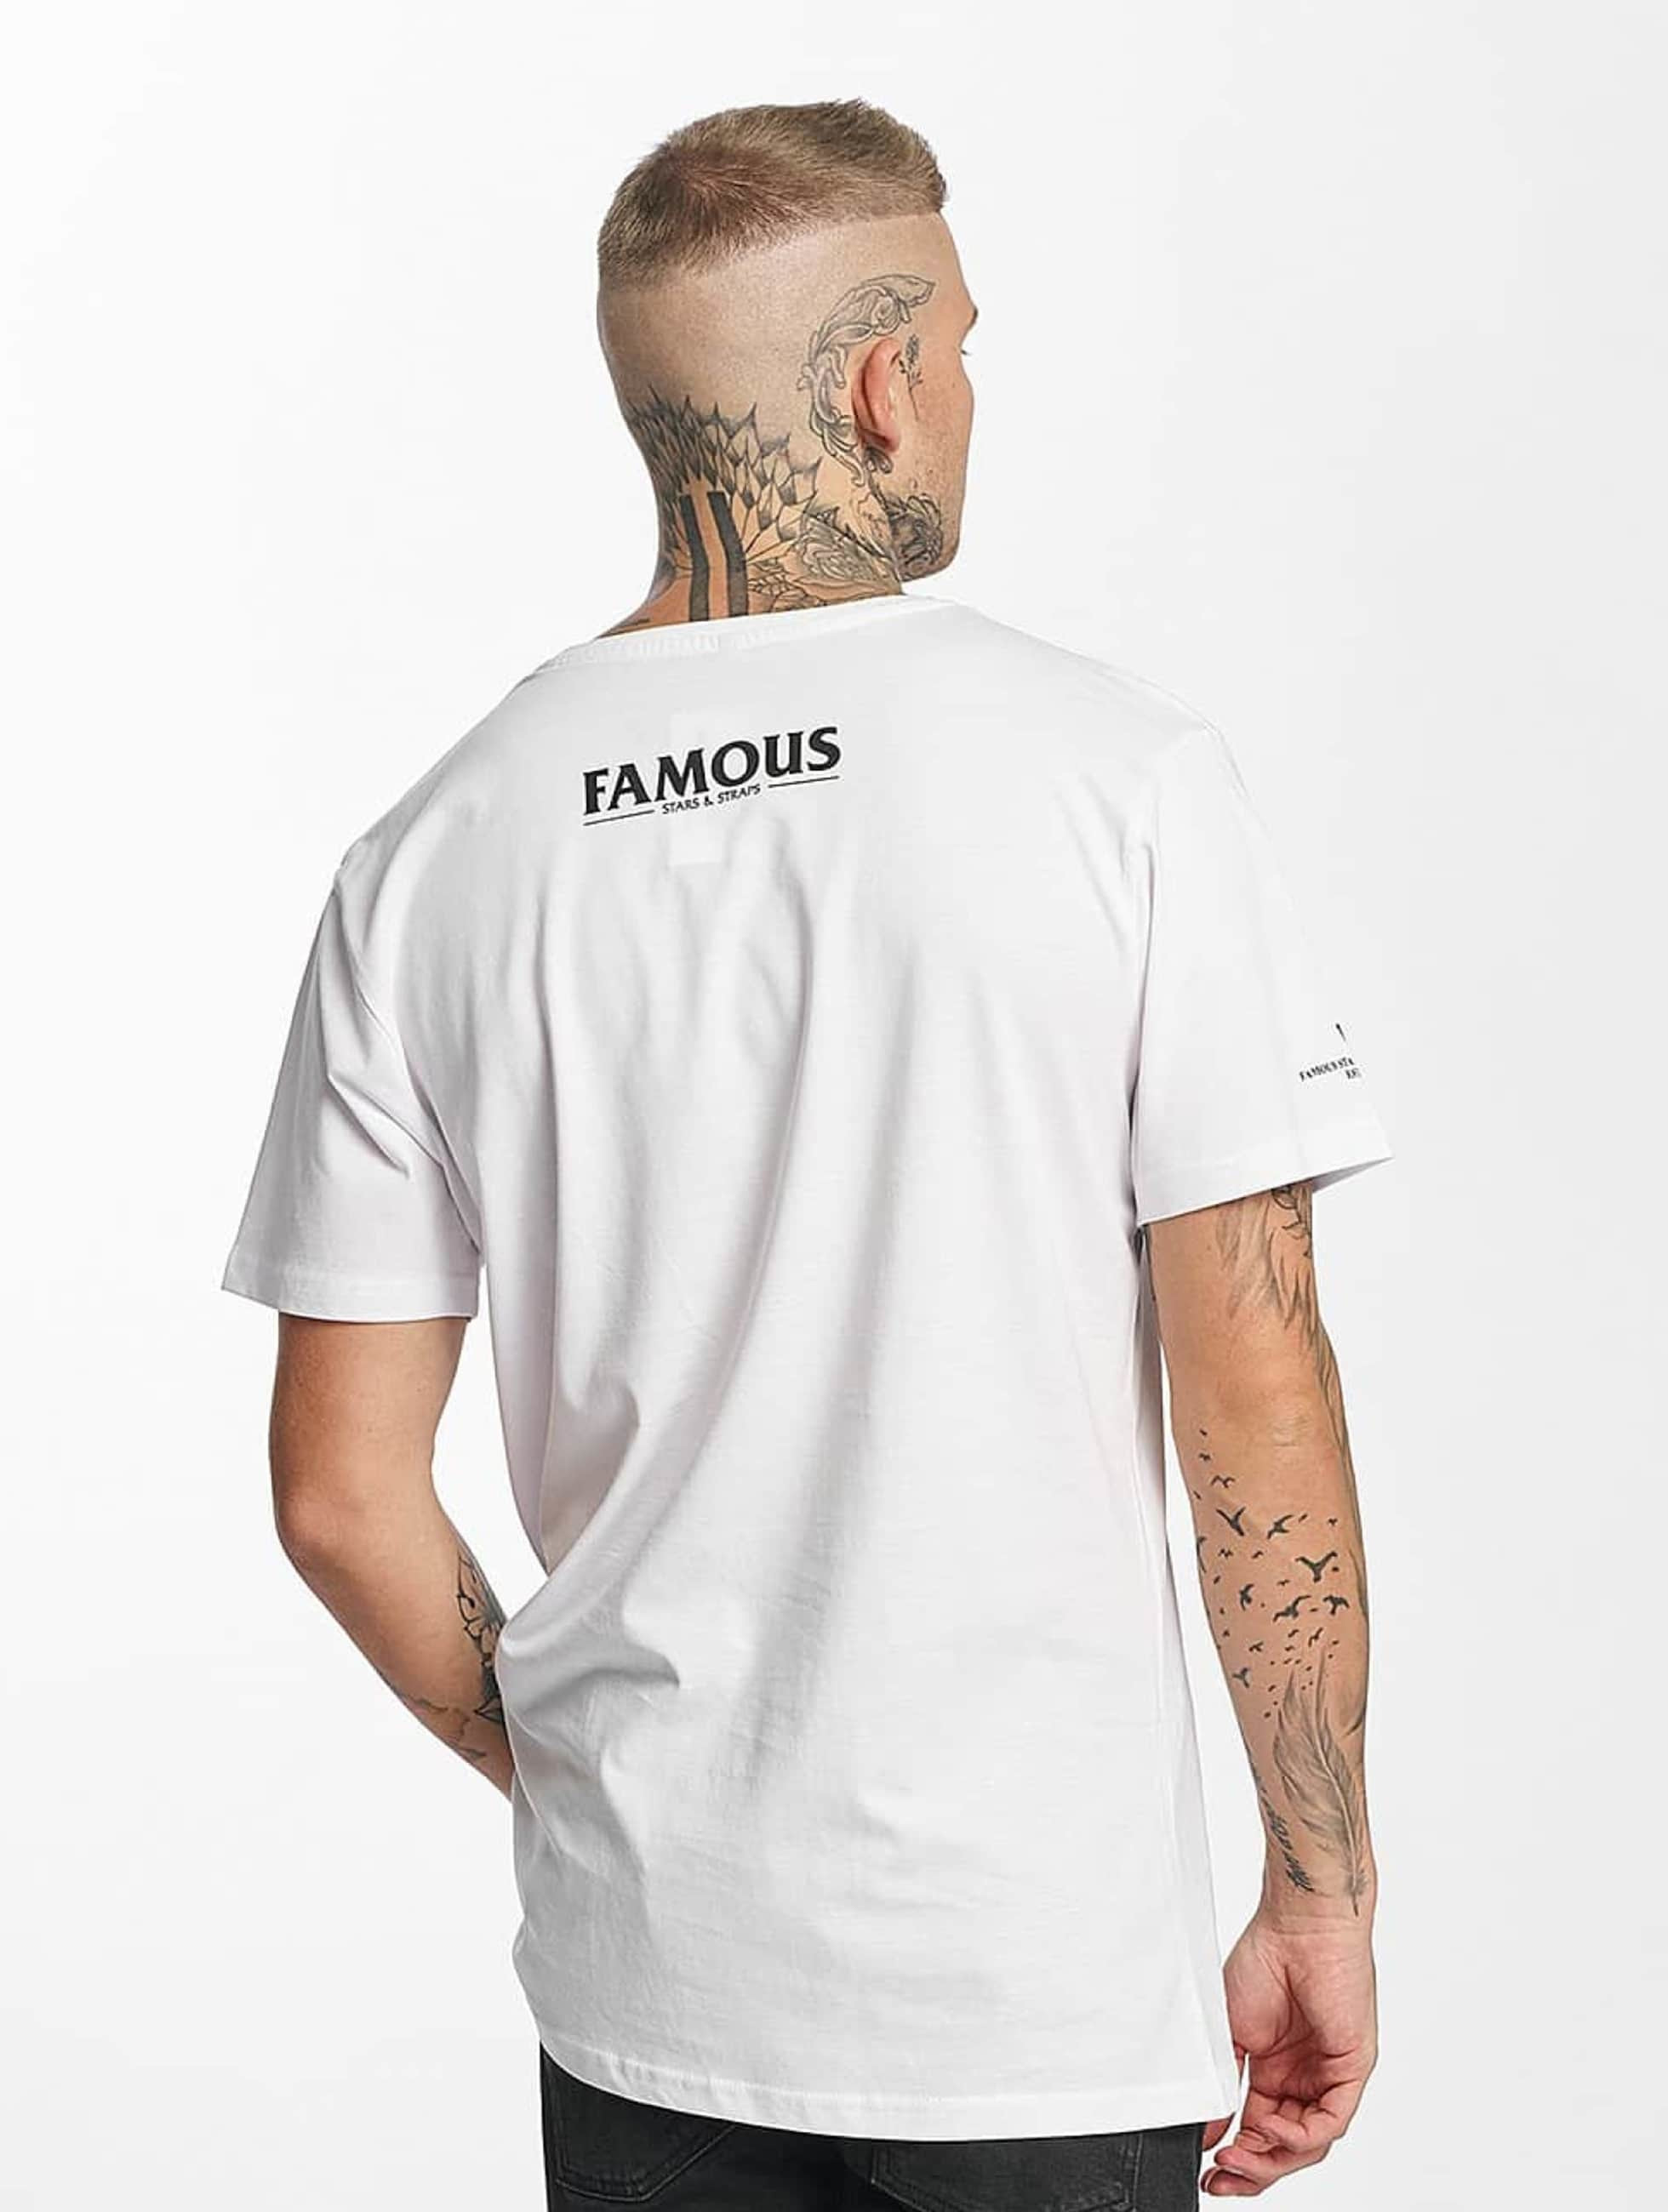 Famous Stars and Straps T-Shirt Drums Drums Drums white